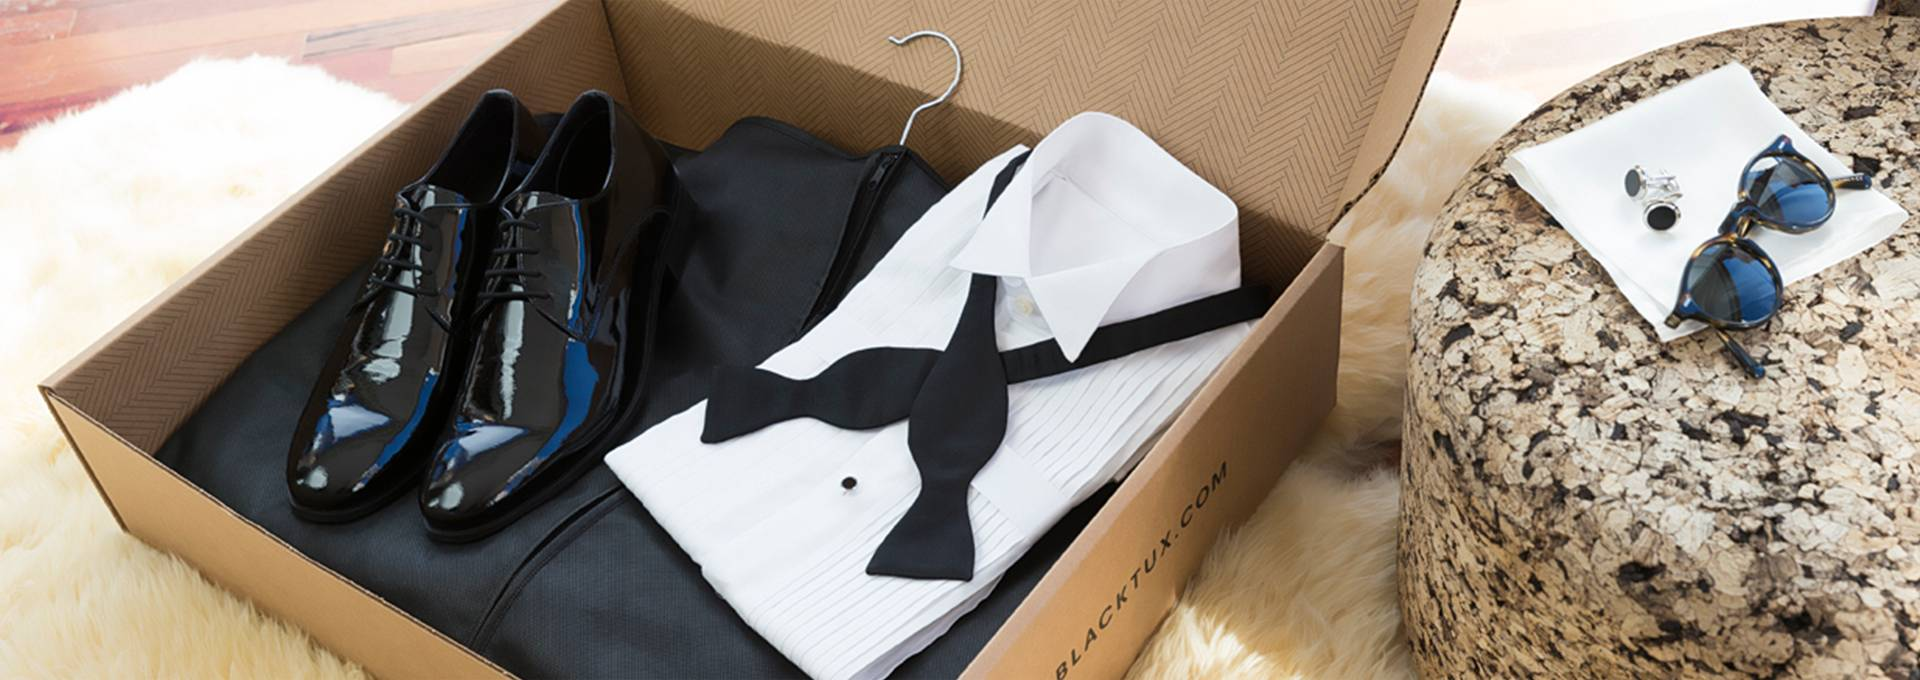 box of shipped tuxedo from The Black Tux